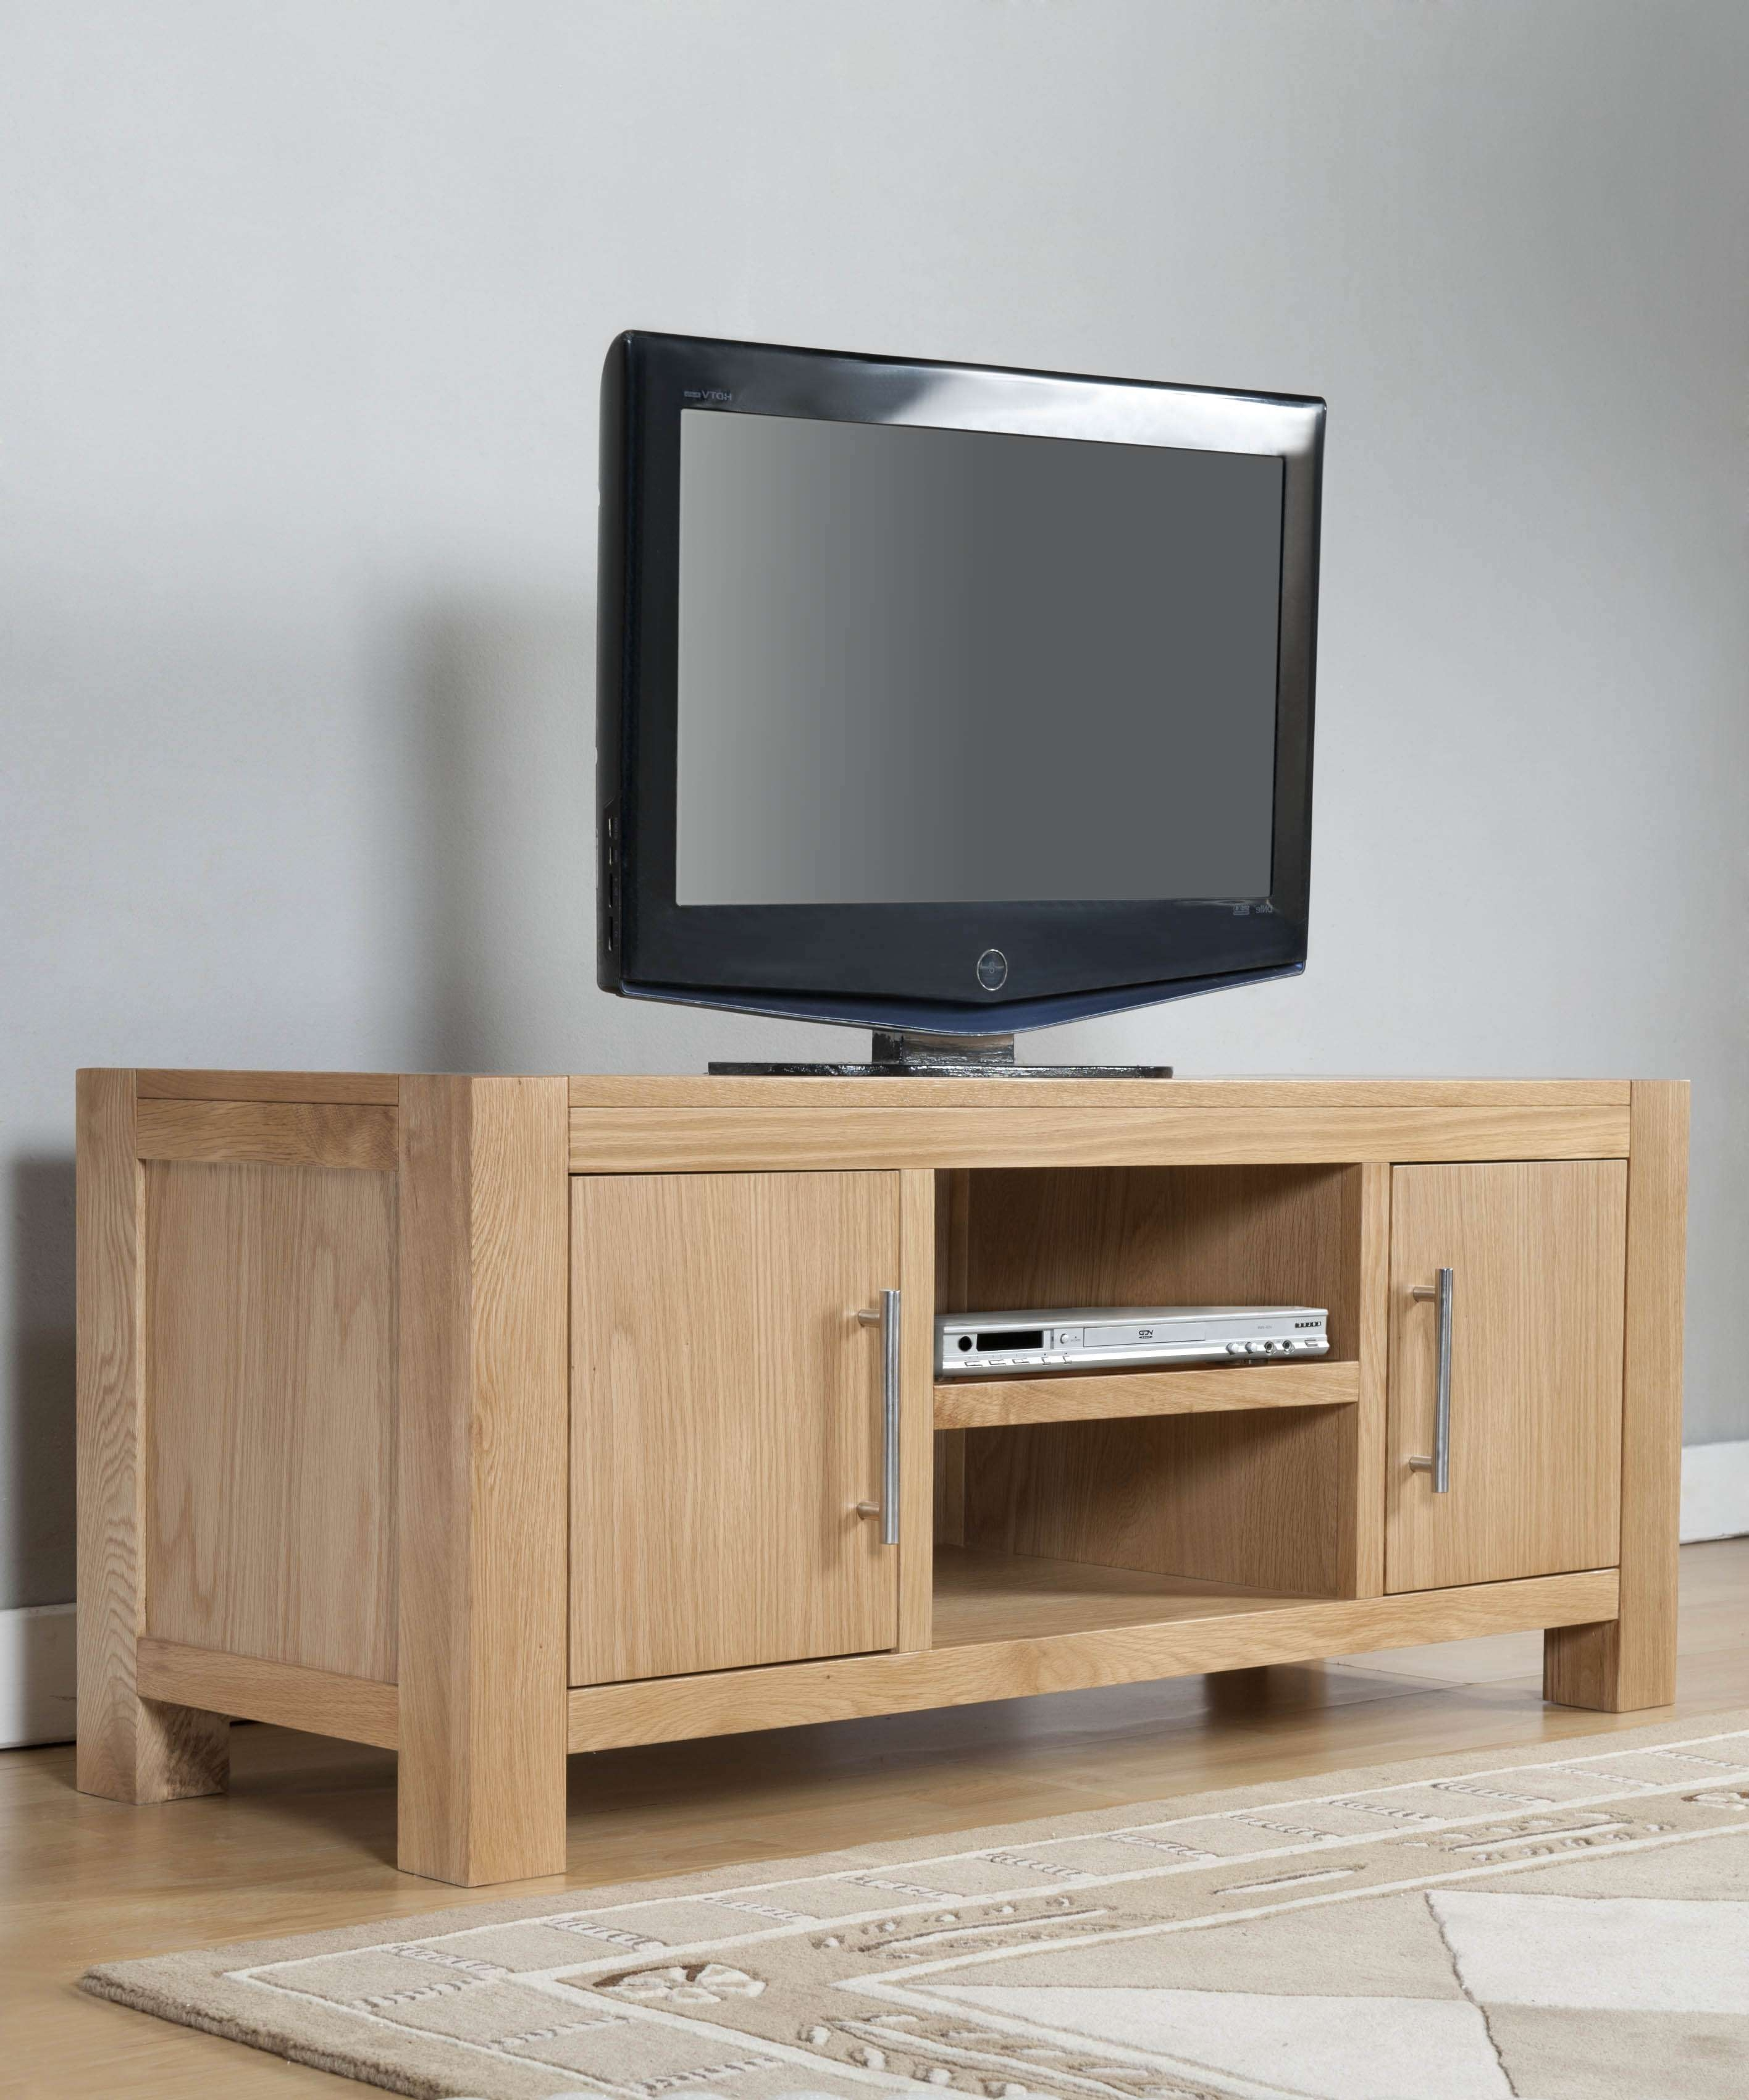 Milano Oak 2 Door Tv Stand With Shelf | Oak Furniture Solutions With Oak Tv Cabinets With Doors (View 8 of 20)